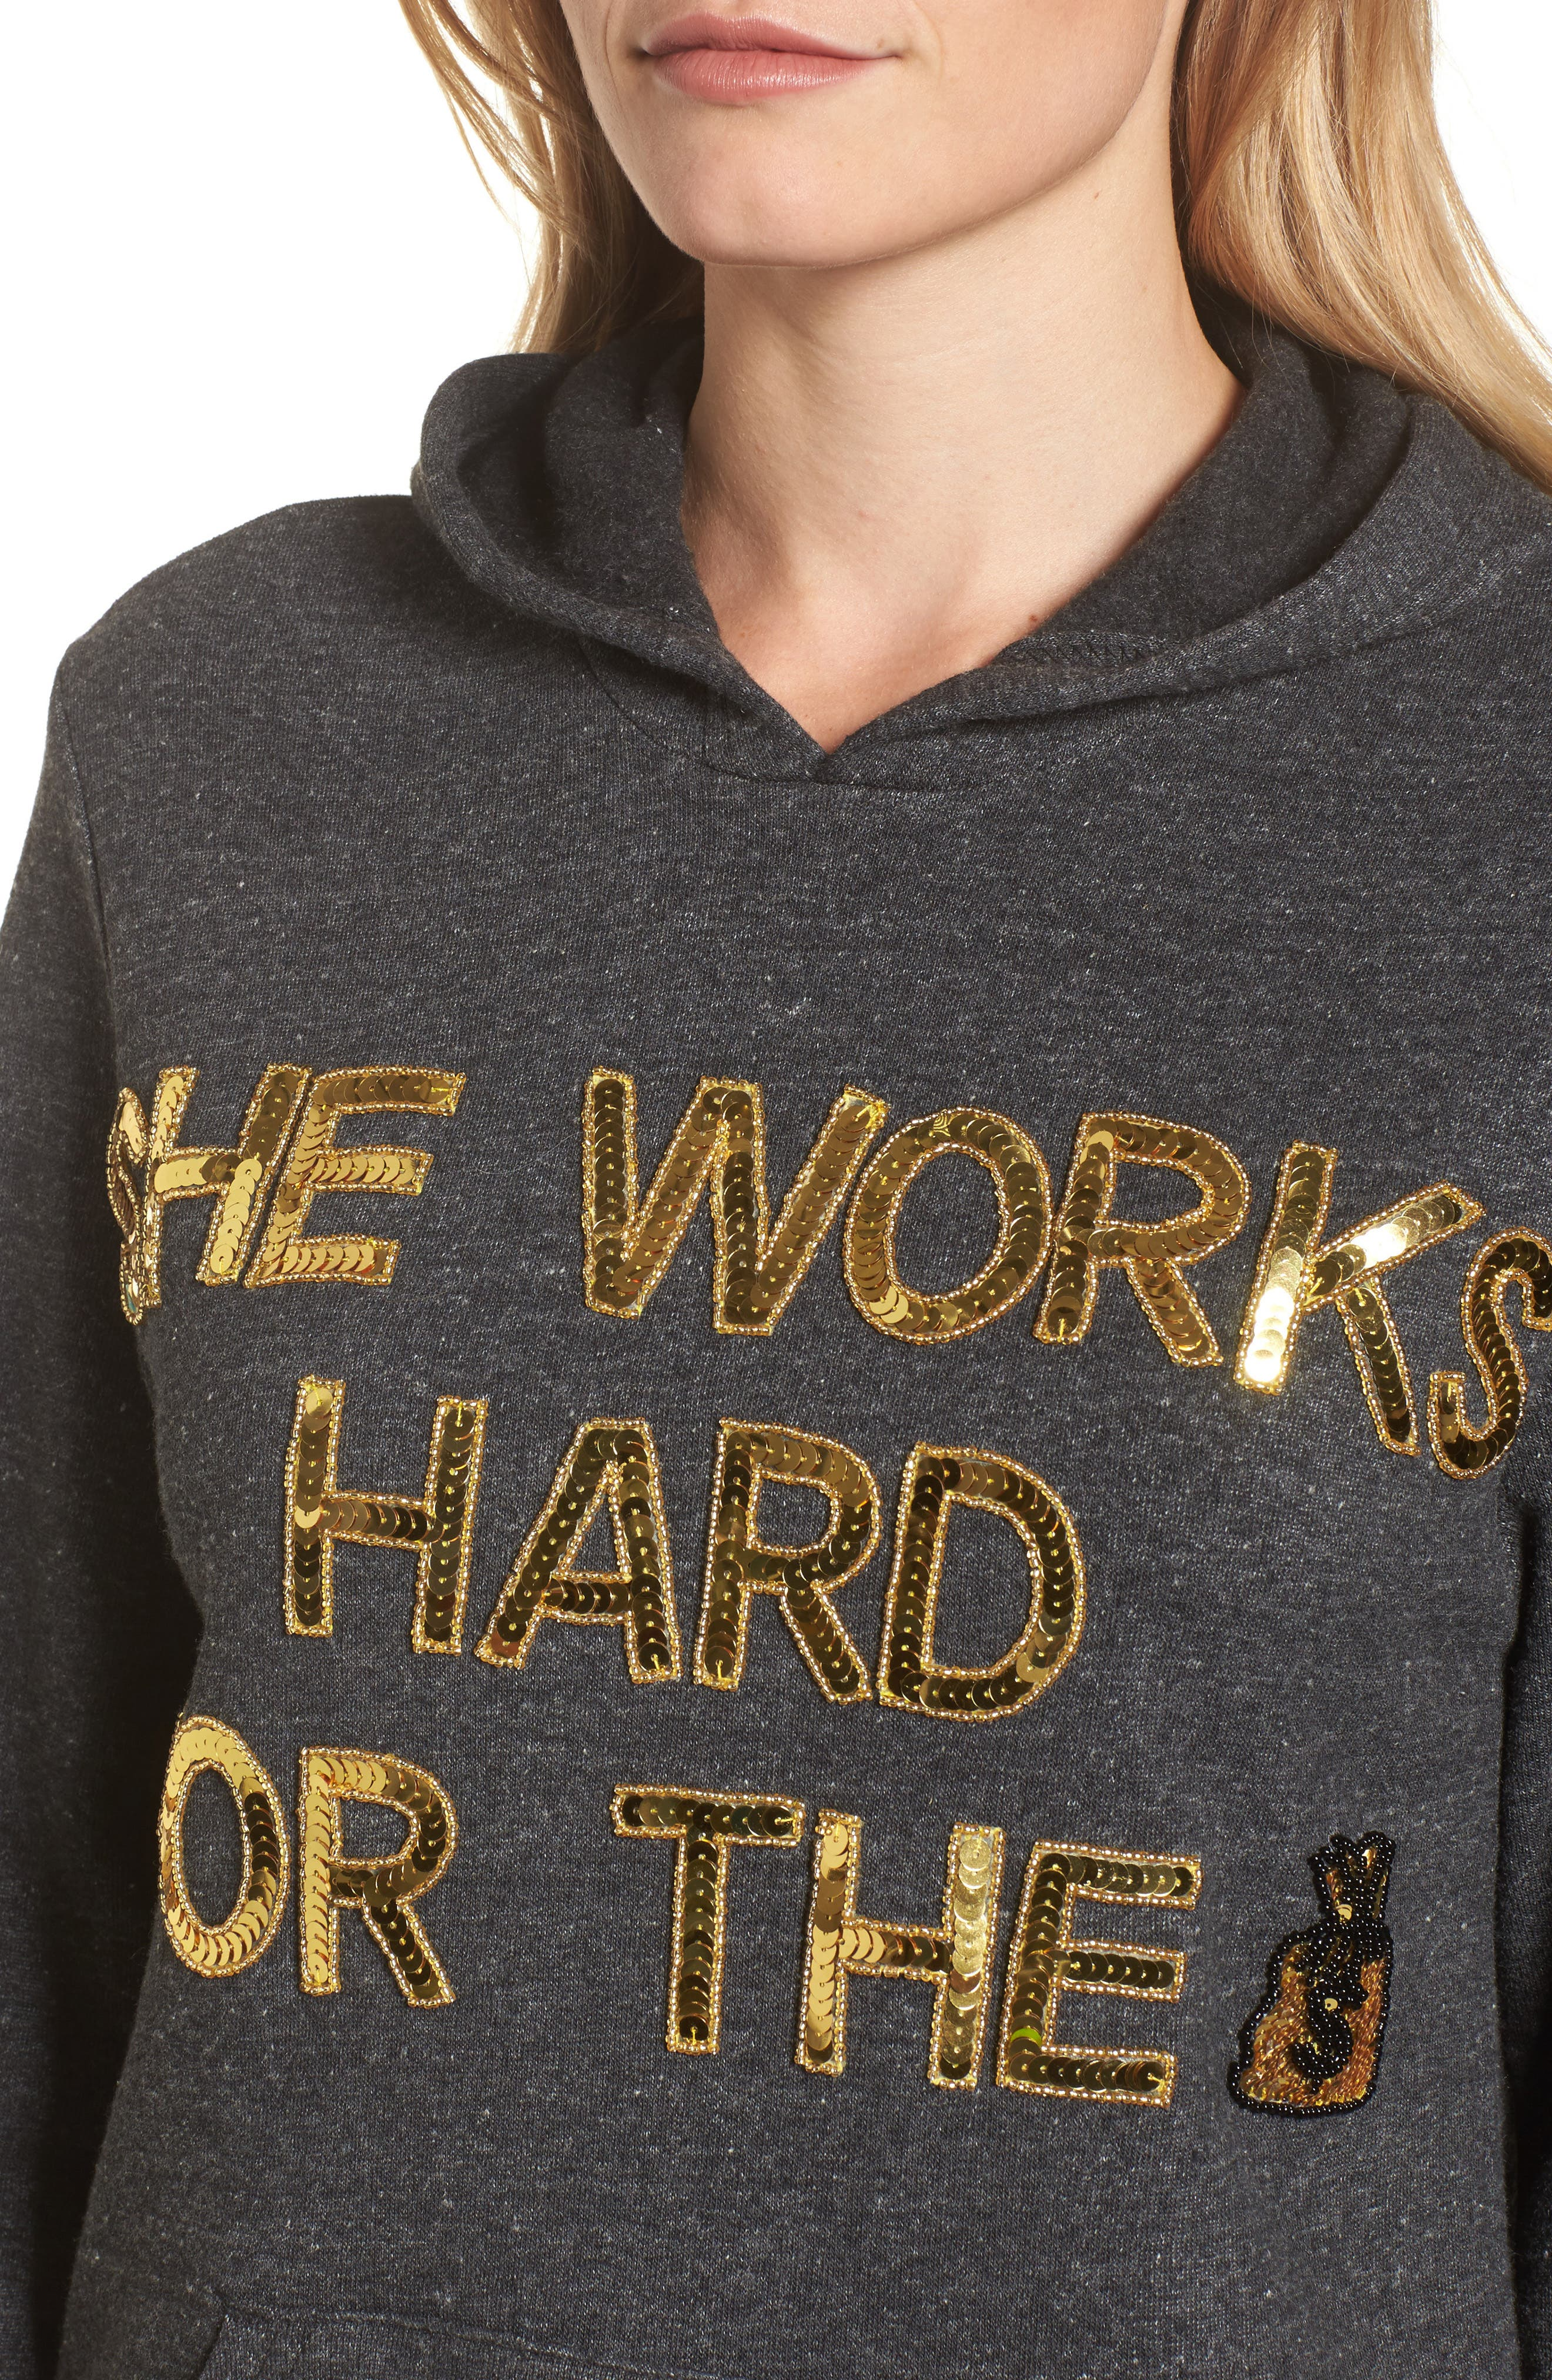 She Works Hard for the Money Hoodie,                             Alternate thumbnail 4, color,                             020